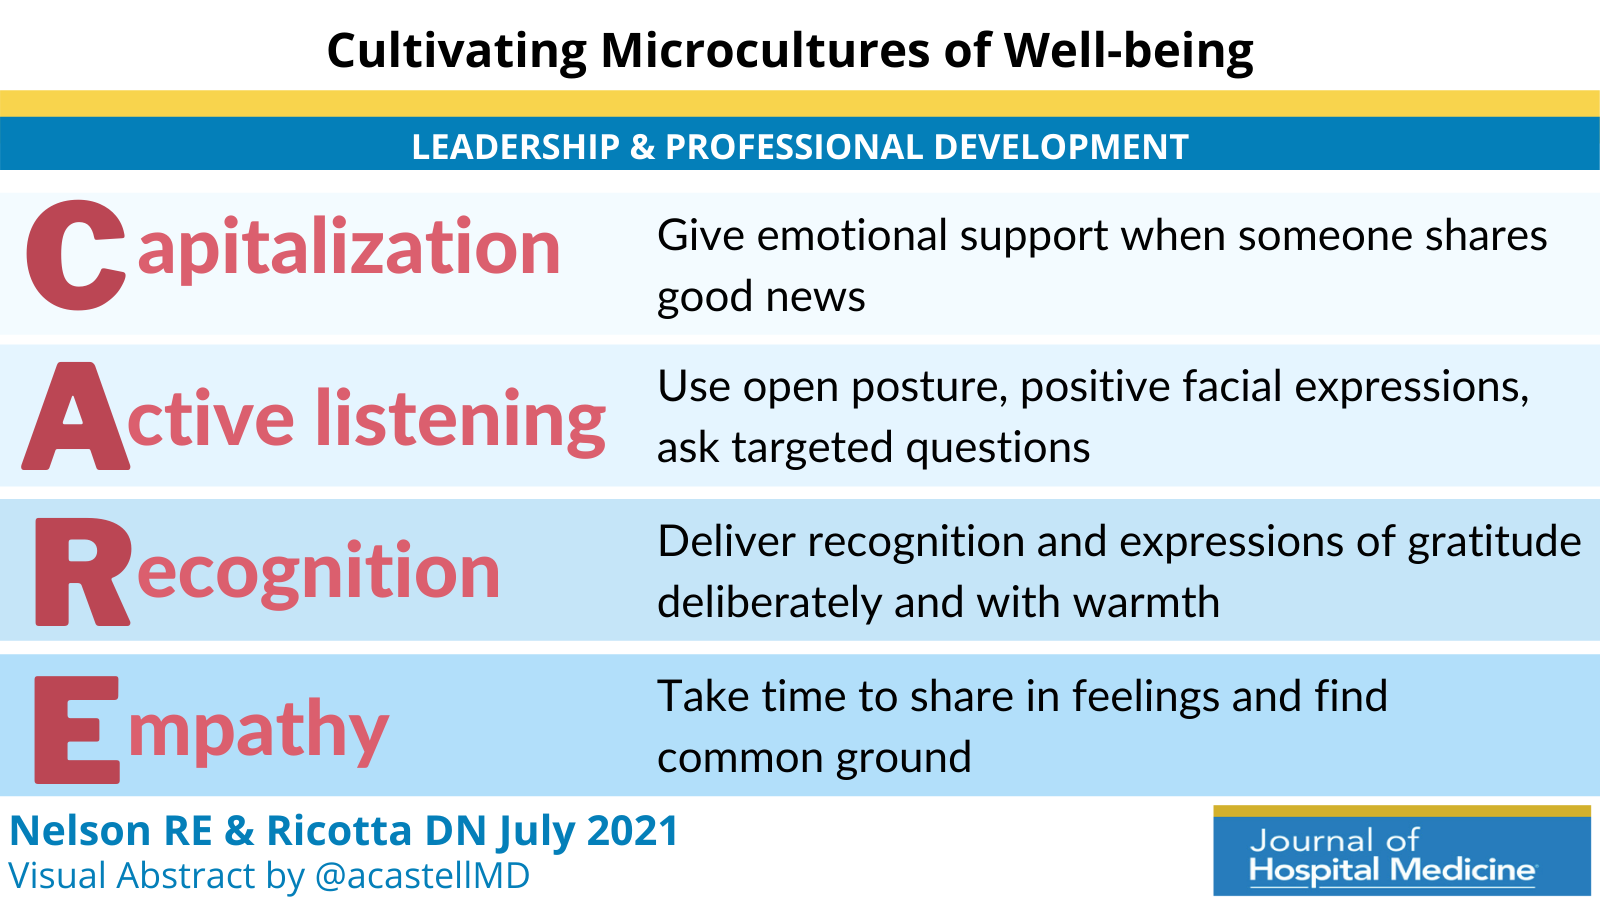 Leadership & Professional Development: Cultivating Microcultures of Well-being